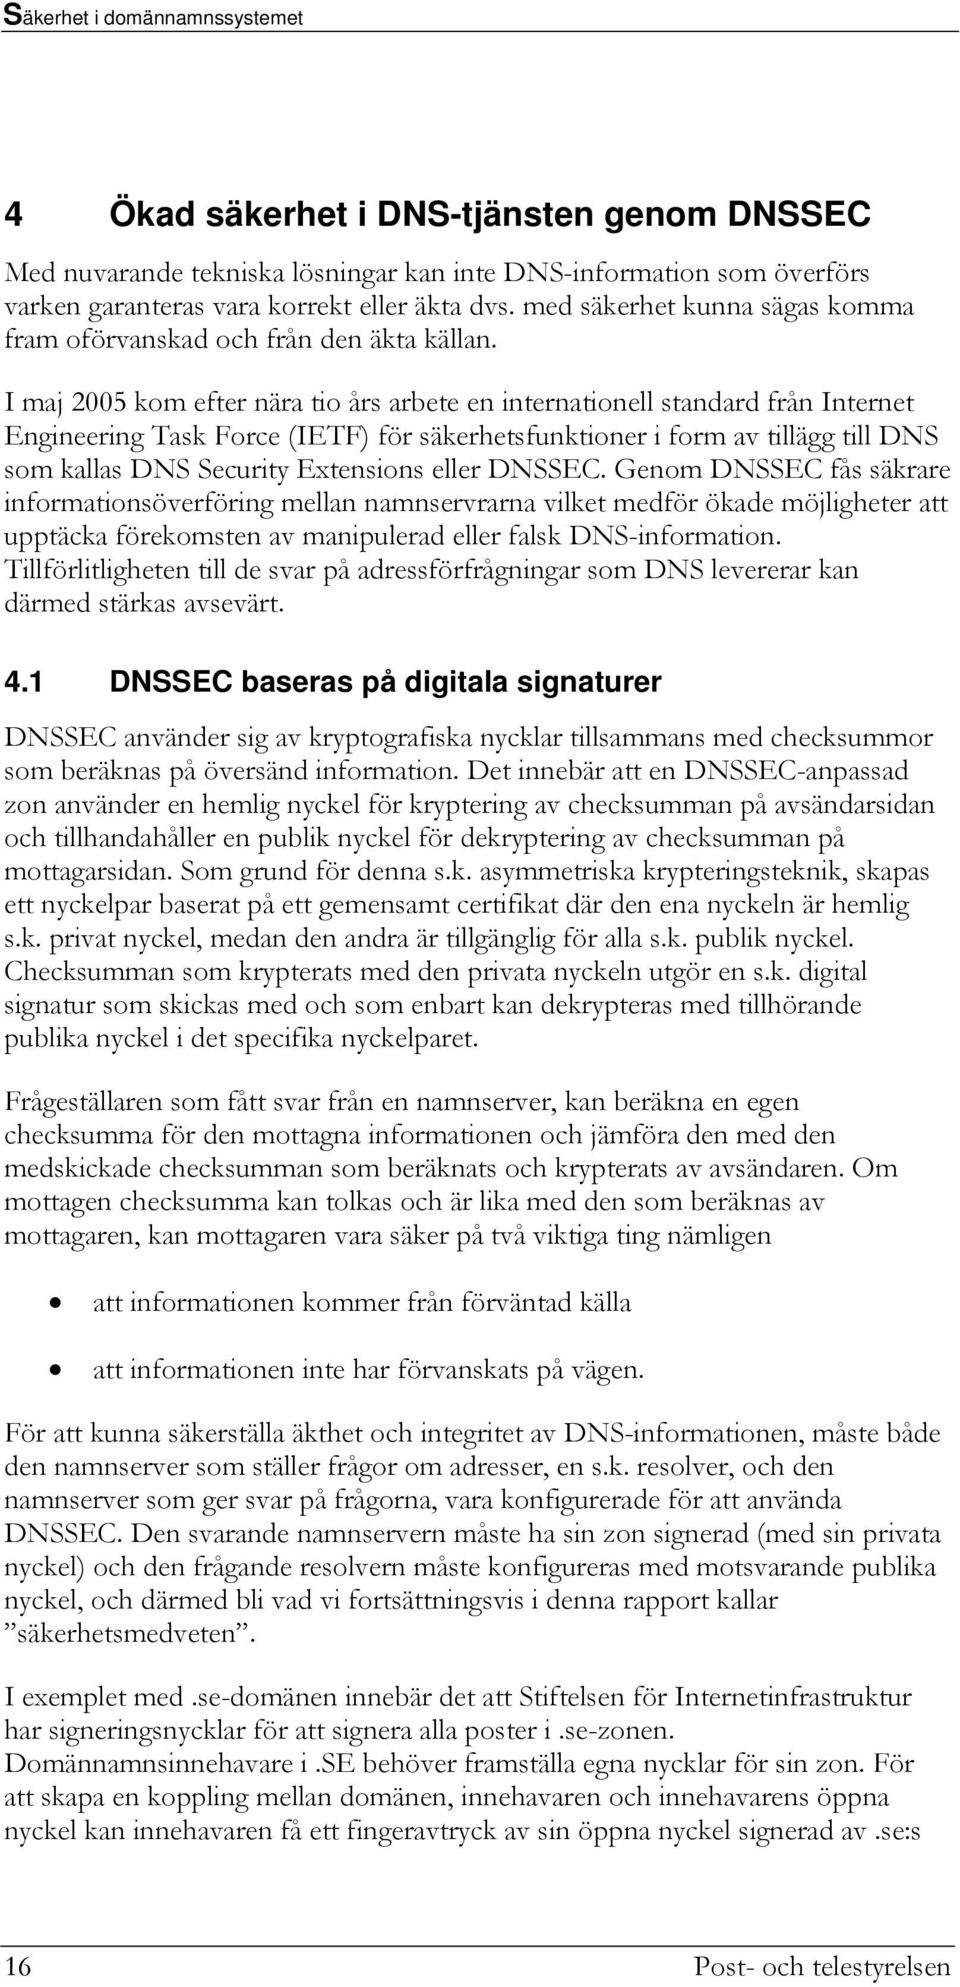 I maj 2005 kom efter nära tio års arbete en internationell standard från Internet Engineering Task Force (IETF) för säkerhetsfunktioner i form av tillägg till DNS som kallas DNS Security Extensions